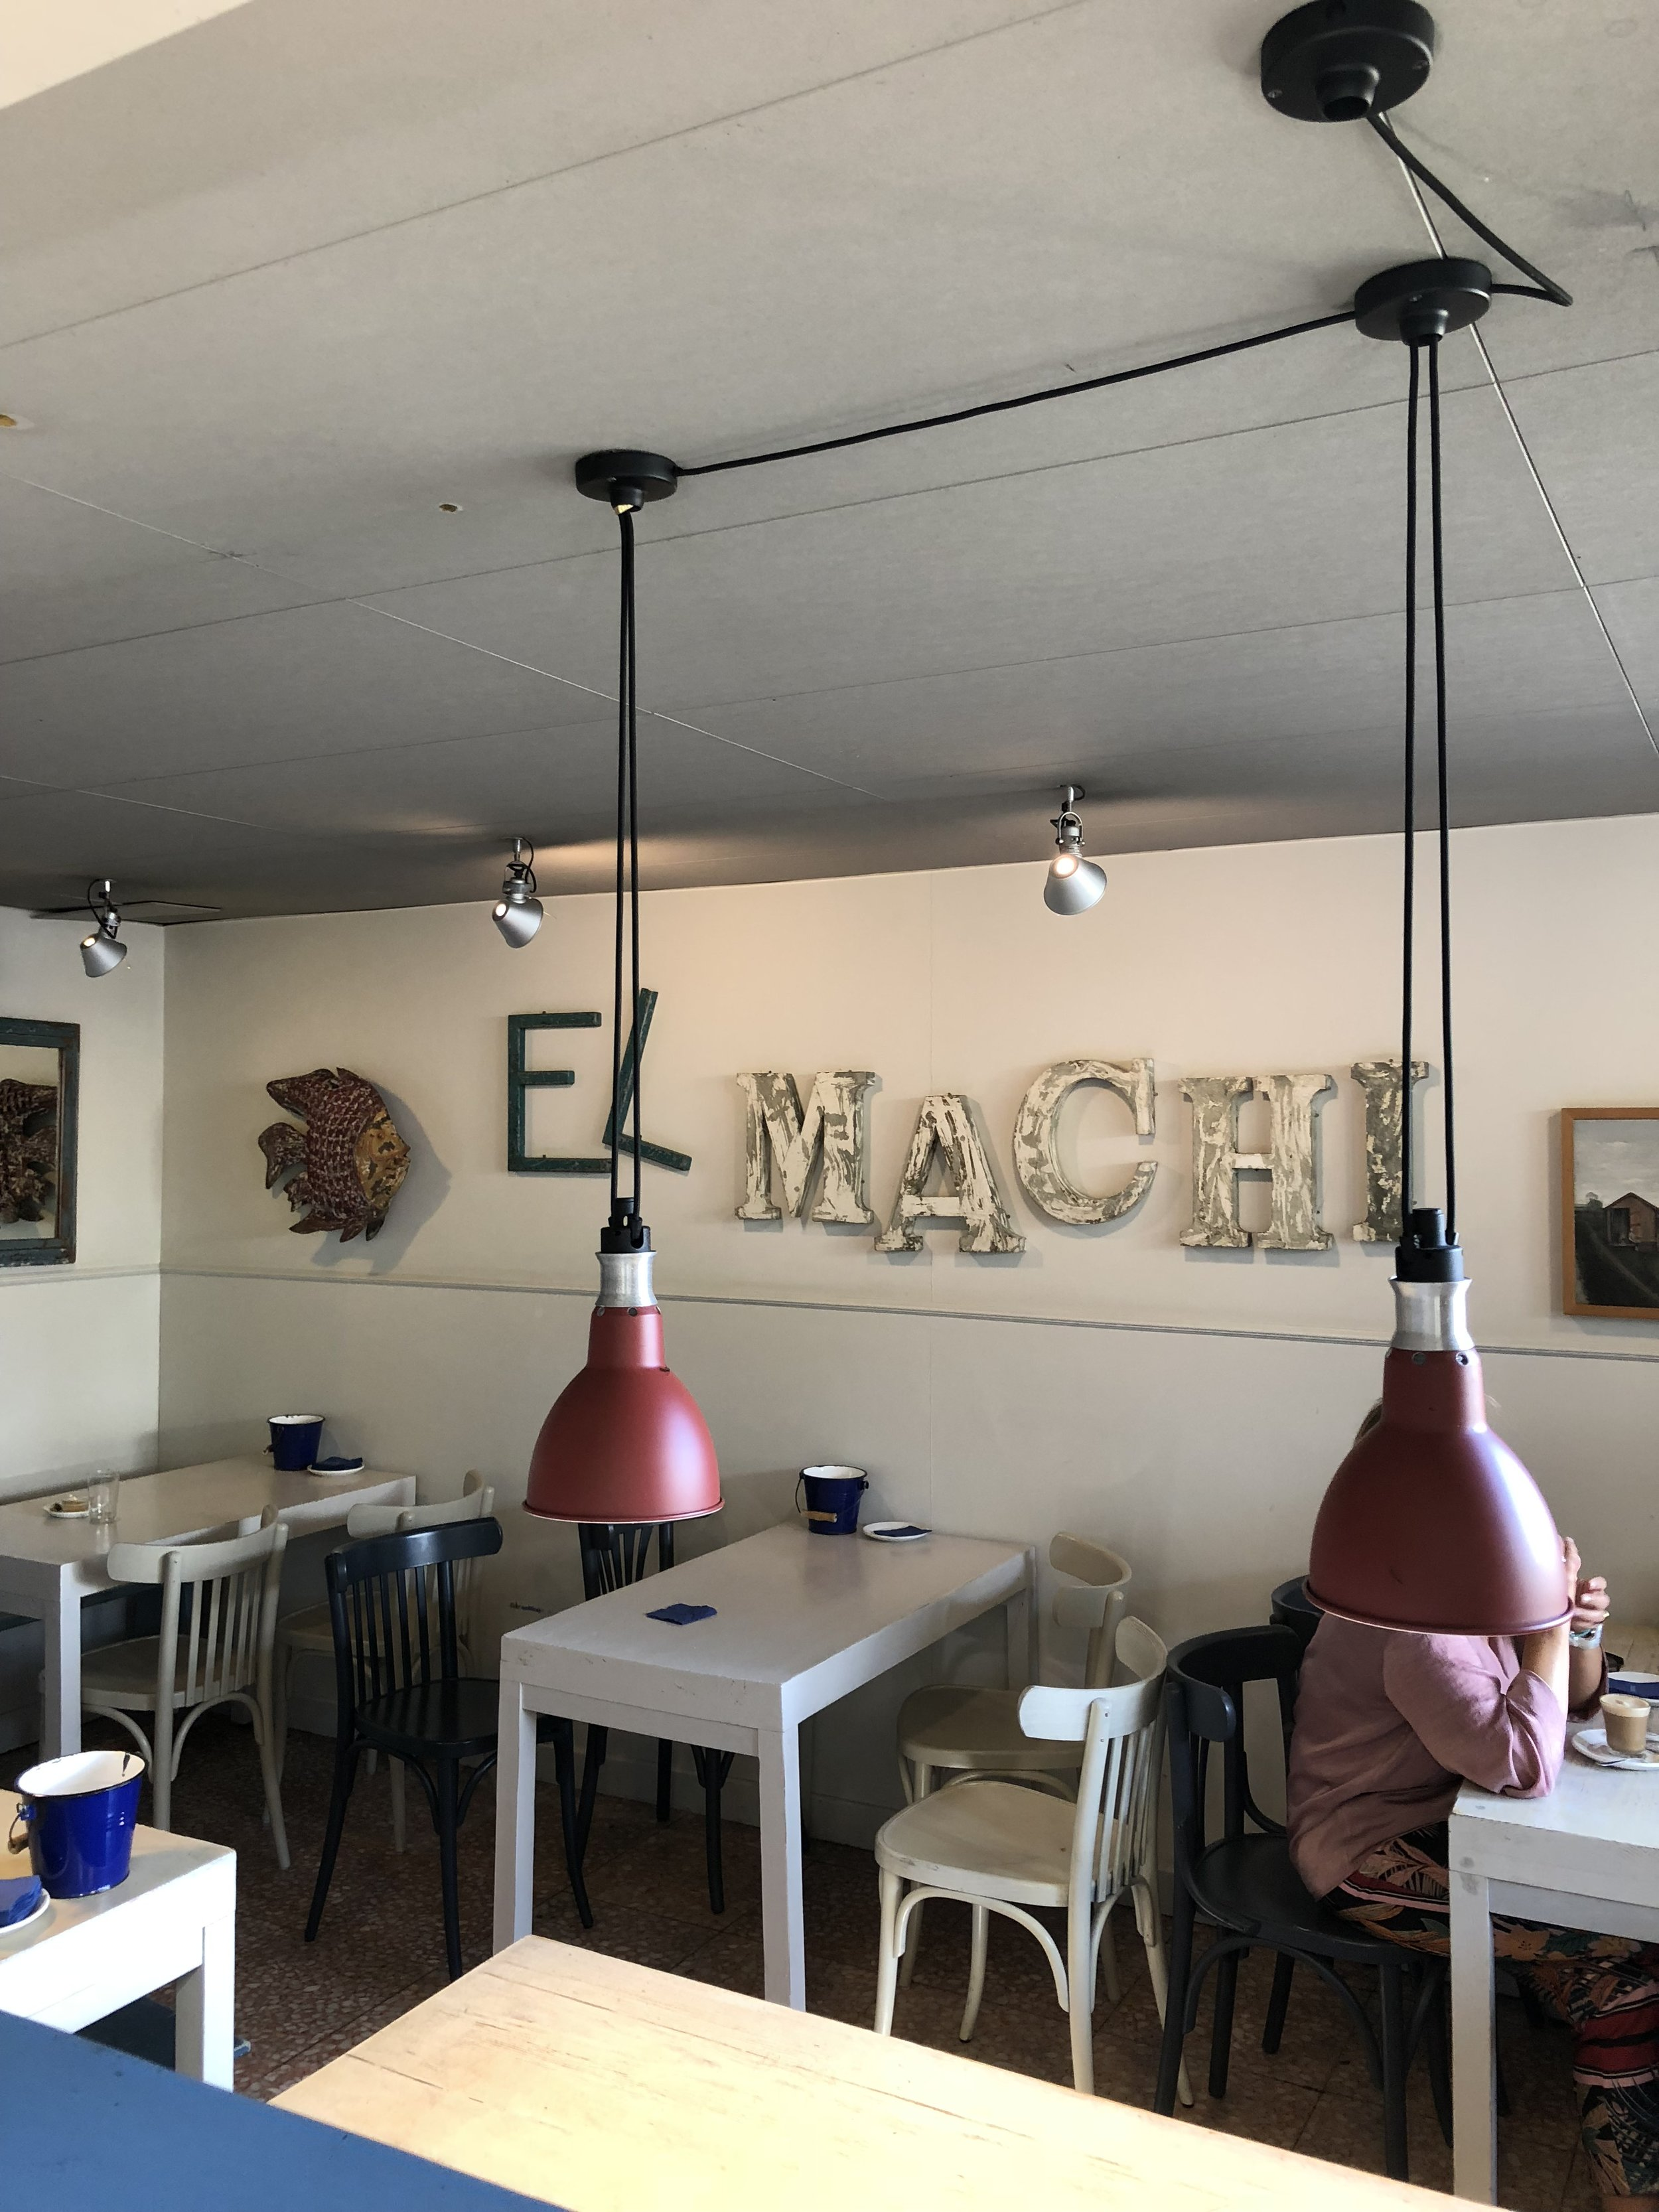 Fantastic food - With a wonderful vibe. And one of the best cups of cafe con leche I have had so far:)